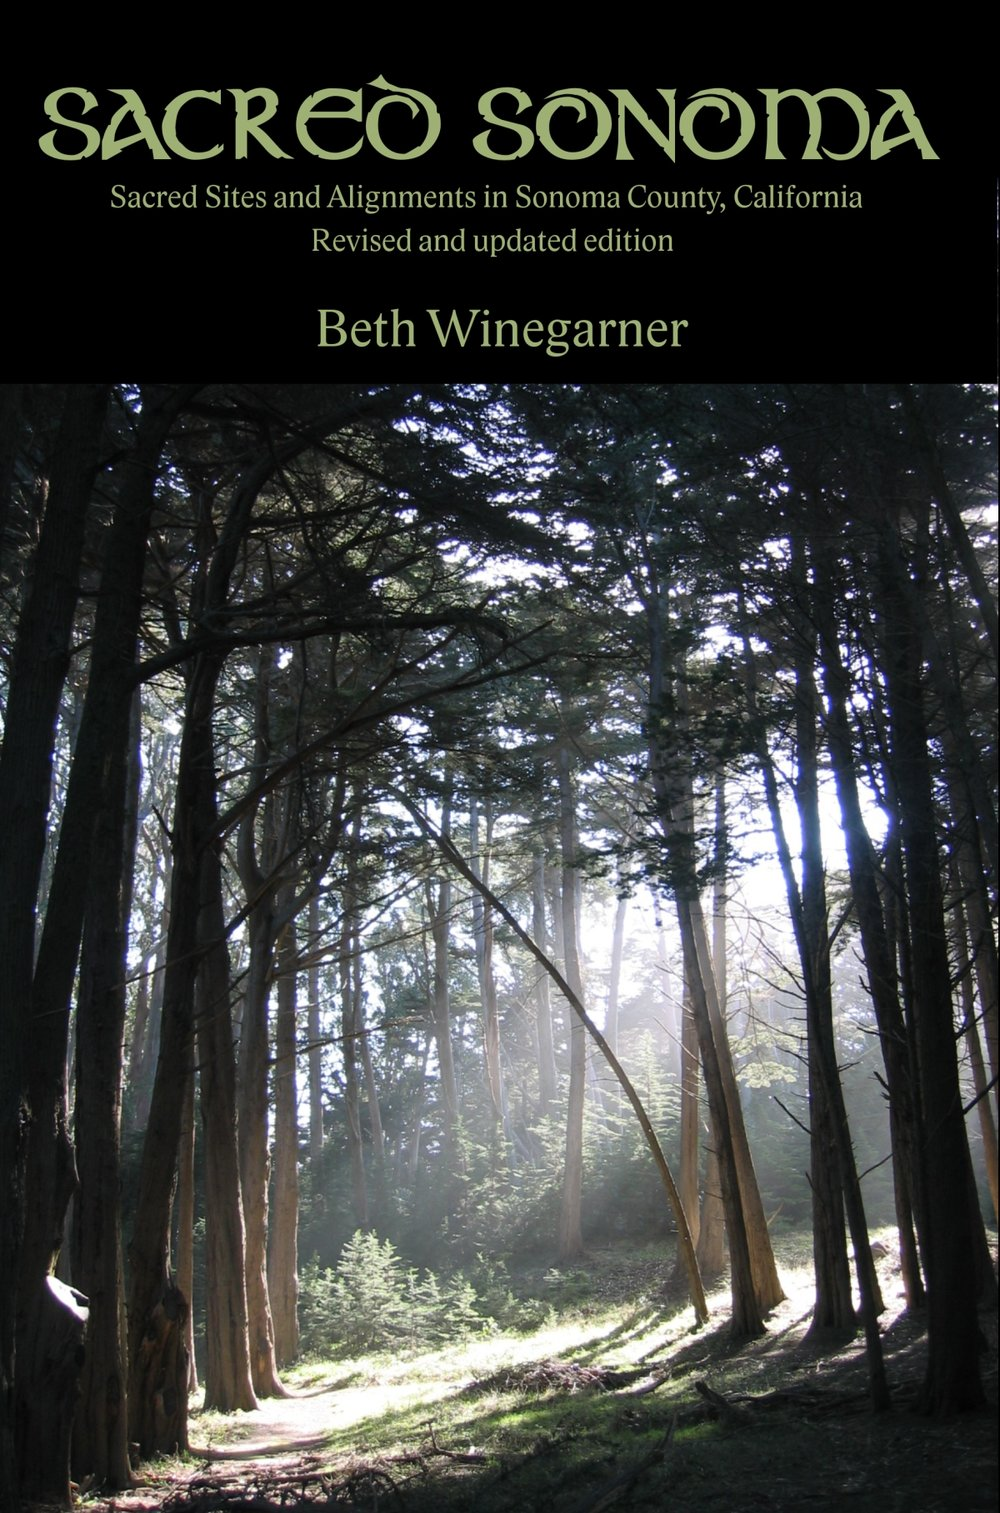 About the book - Beth Winegarner became the first to apply British and European concepts of earth energy and sacred alignments to the Sonoma County landscape when she began researching the region's historic and haunted sites in 1995. She then became the first to publish that research when she published Sacred Sonoma online in 2000, and in print in 2007. The volume is completely revised and updated with new sites, new photographs and a new introduction from the author. It also includes maps drawn by illustrator Matt Berger.Locals and travelers can carry Sacred Sonoma with them as they visit the unusual sites and alignments it describes. Take it along as you explore the beauty, history and mystery of Sonoma County.Praise for Sacred Sonoma: